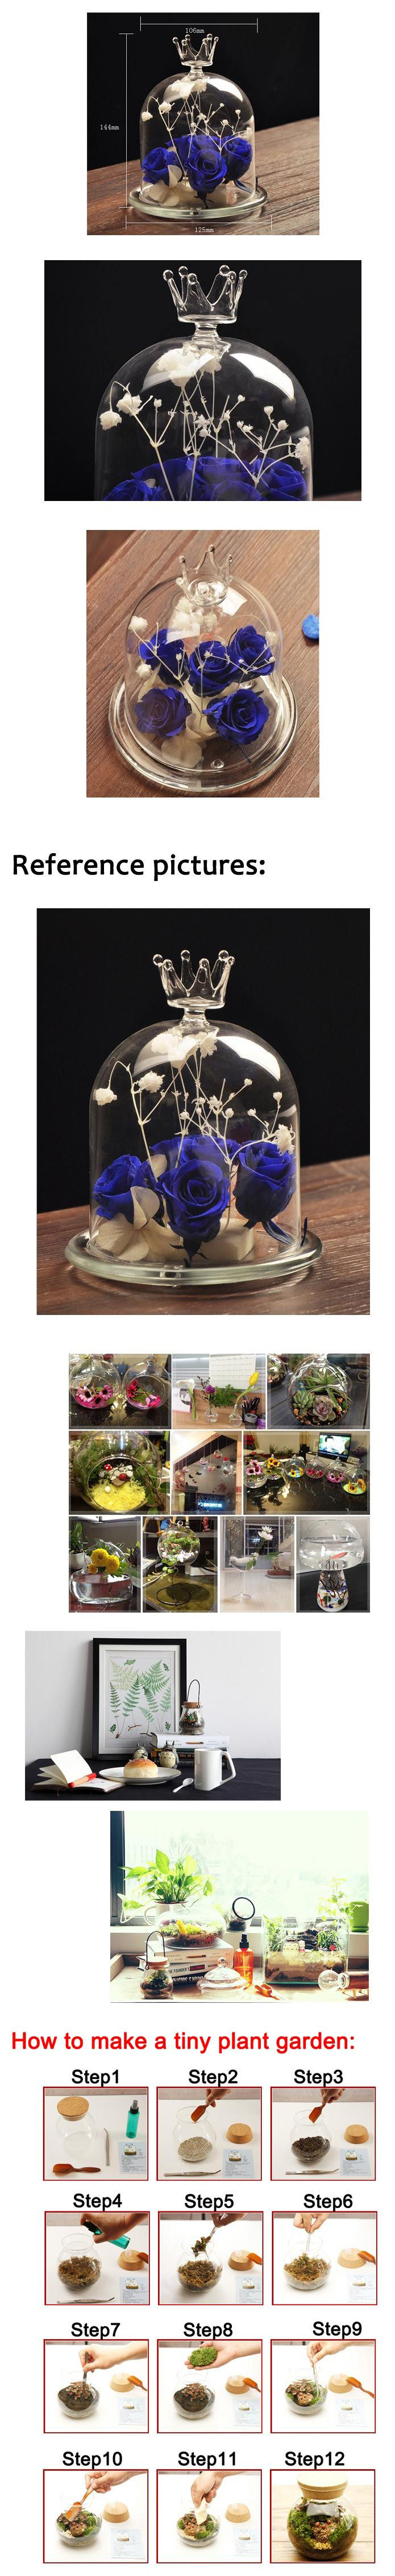 8 inch glass vase of 5 6 inches transparent flower plant vase crown glass cloche vases with import duties taxes and charges